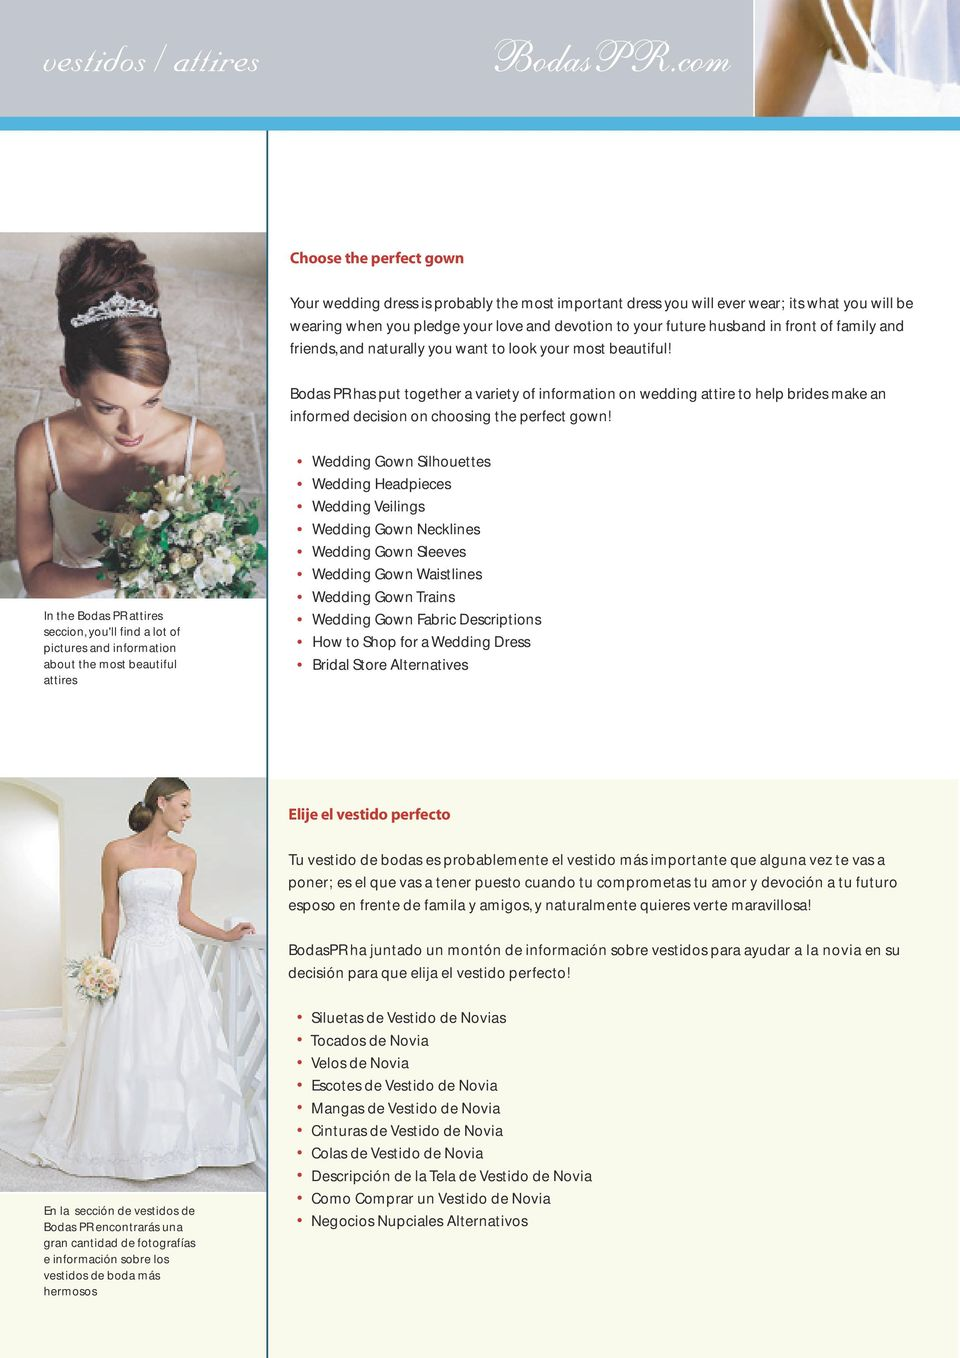 Bodas PR has put together a variety of information on wedding attire to help brides make an informed decision on choosing the perfect gown!